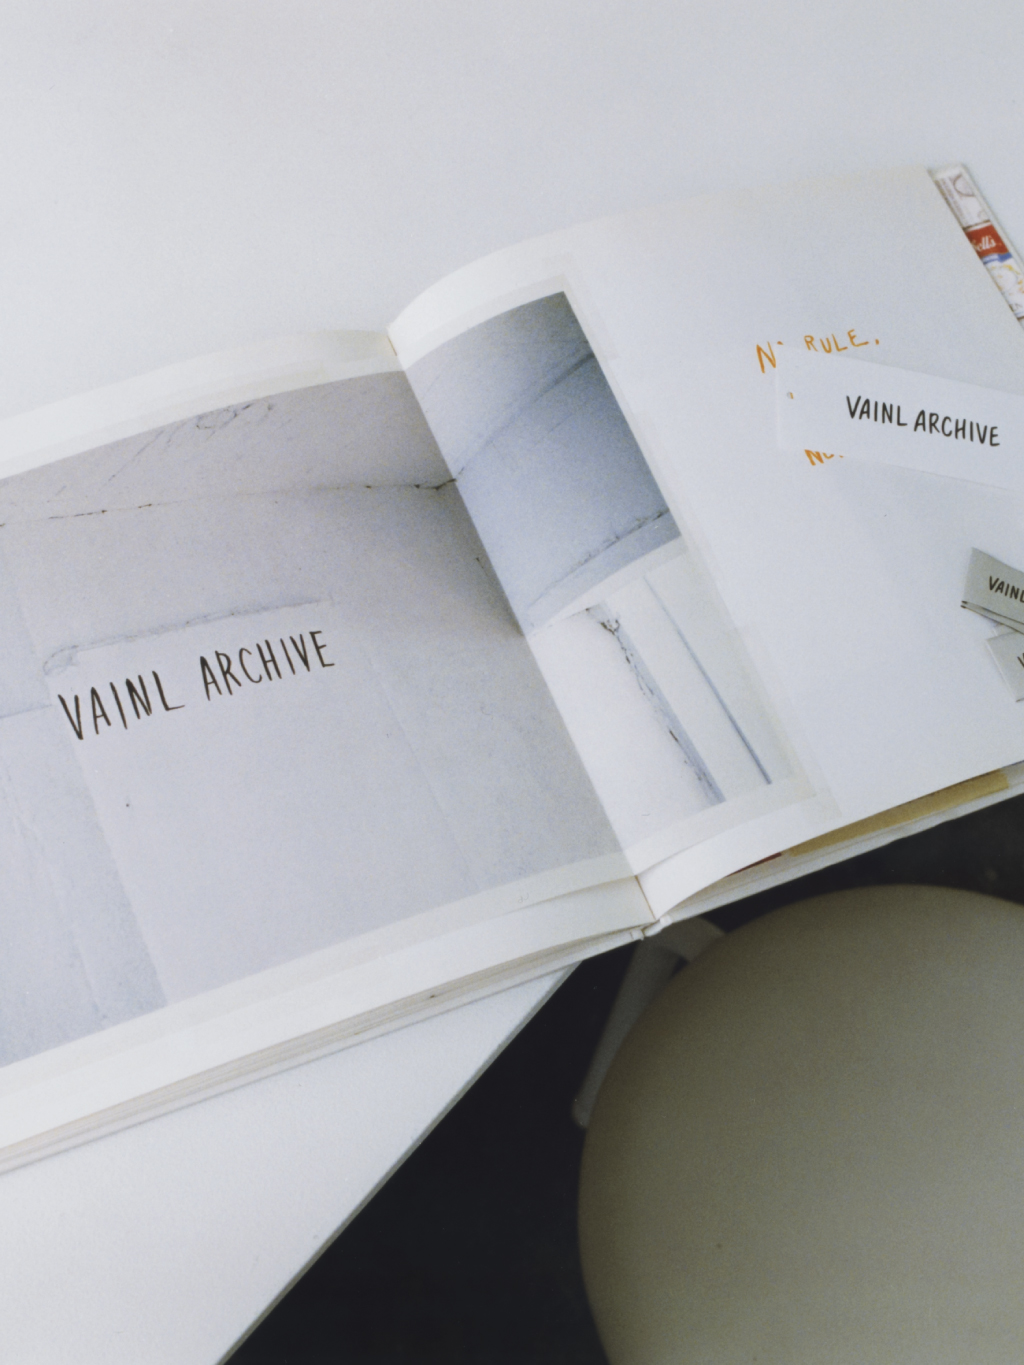 VAINL ARCHIVE from vol.102